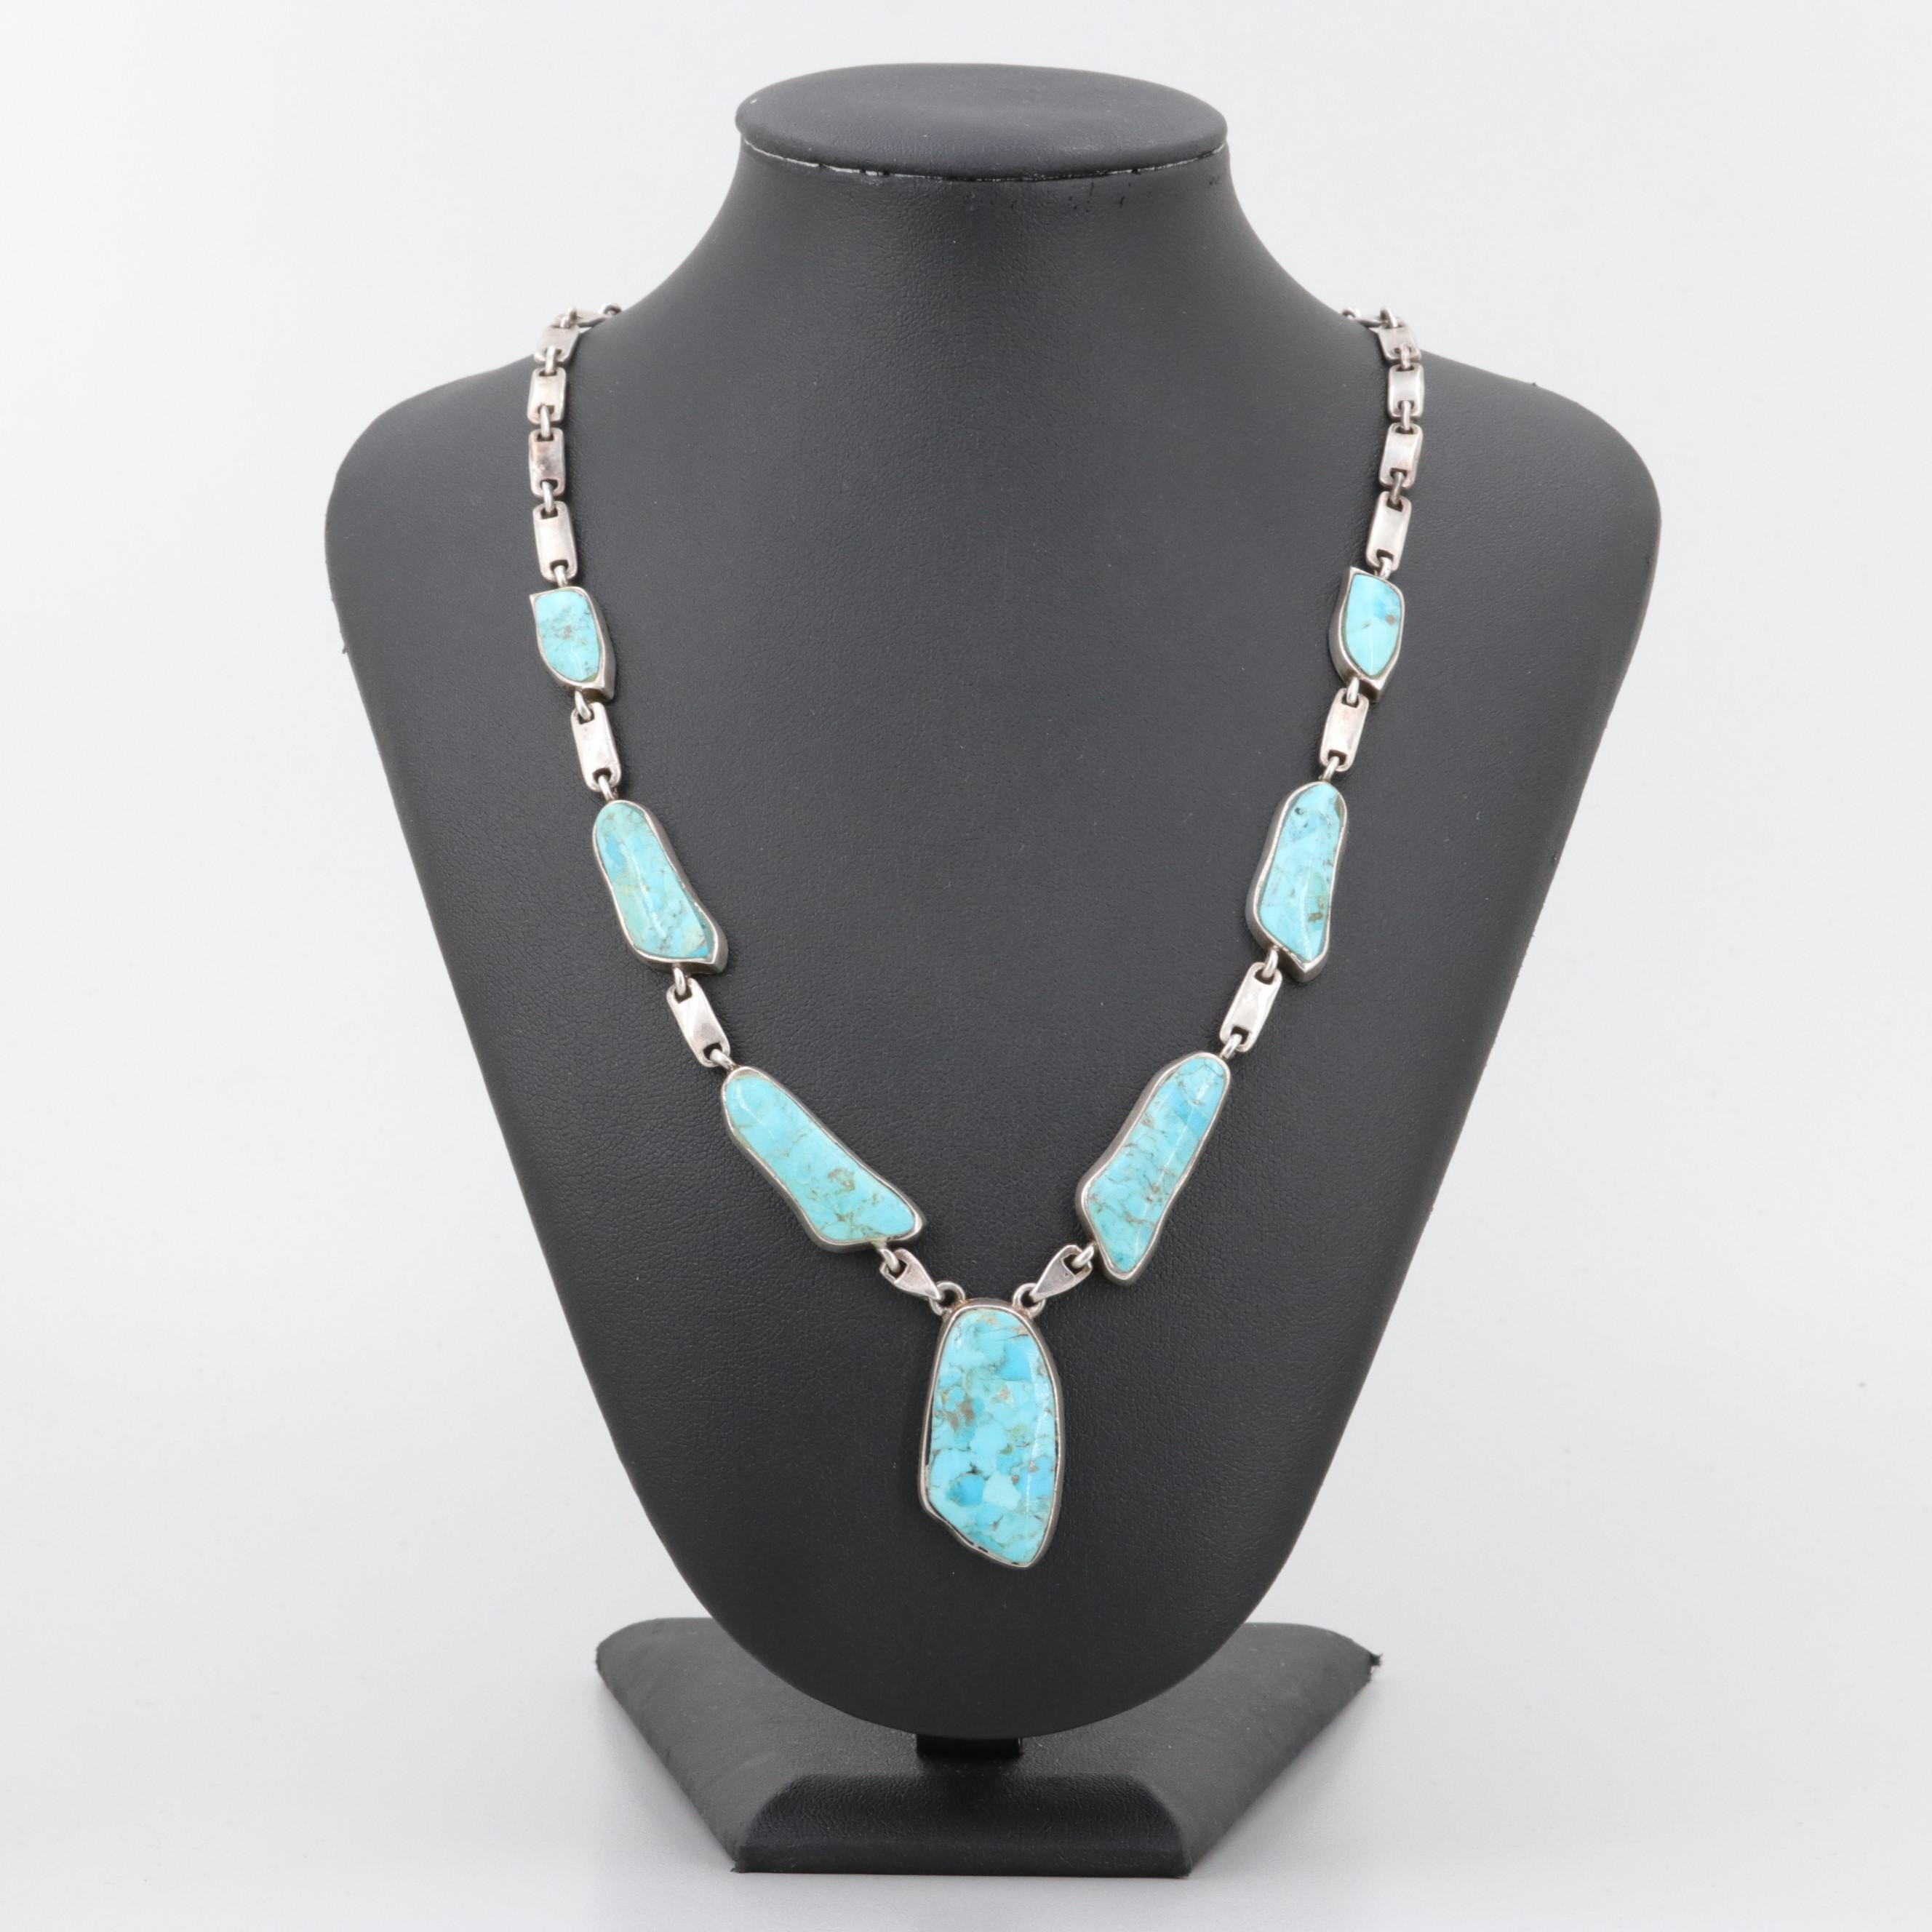 Southwestern Style Sterling Silver Composite Turquoise Necklace